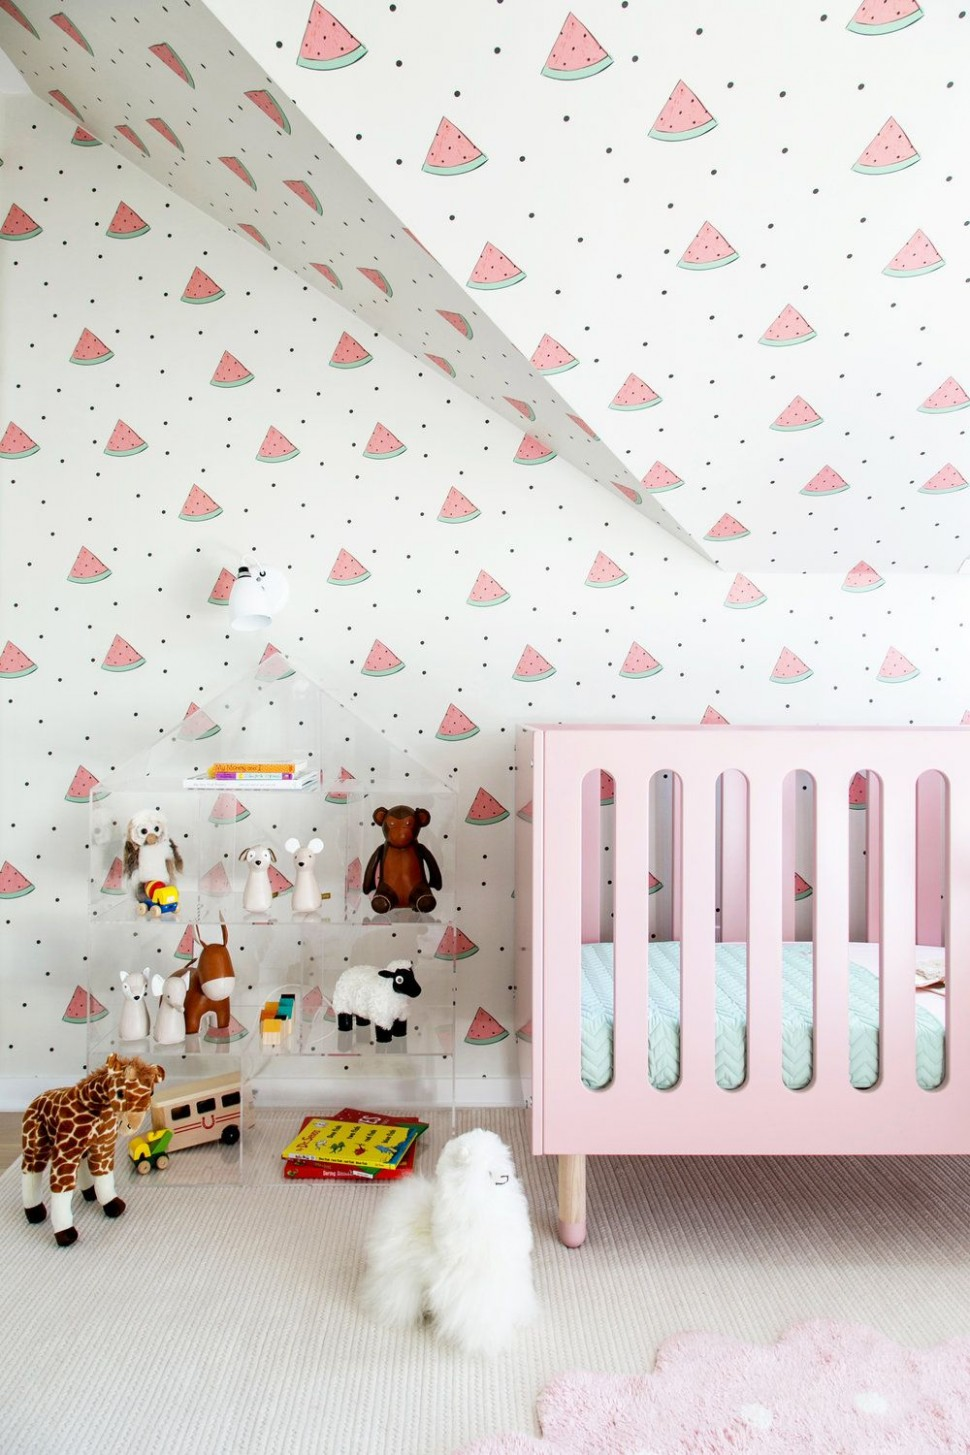 12 Cute Nursery Decorating Ideas - Baby Room Designs for Chic Parents - Baby Room Wallpaper Ideas